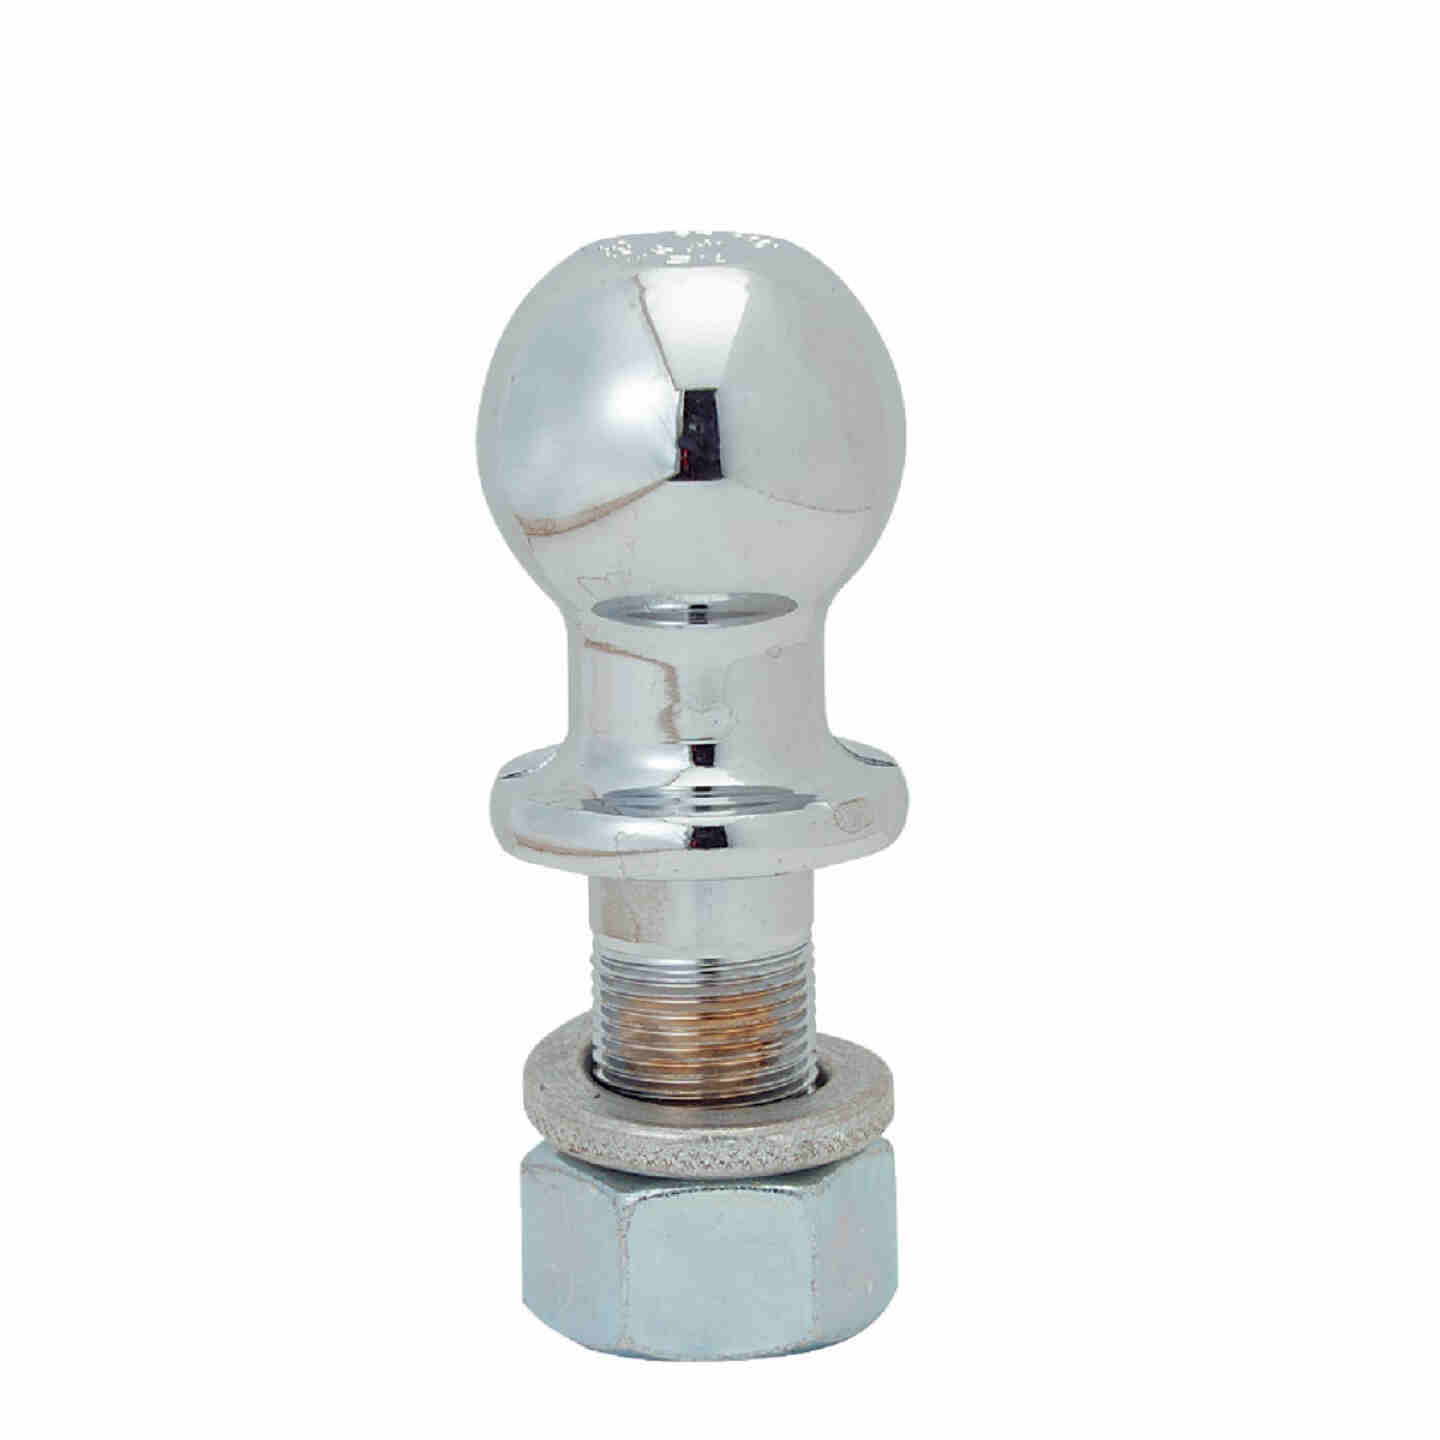 Reese Towpower 1-7/8 In. x 1 In. x 2 In. Hitch Ball Image 1